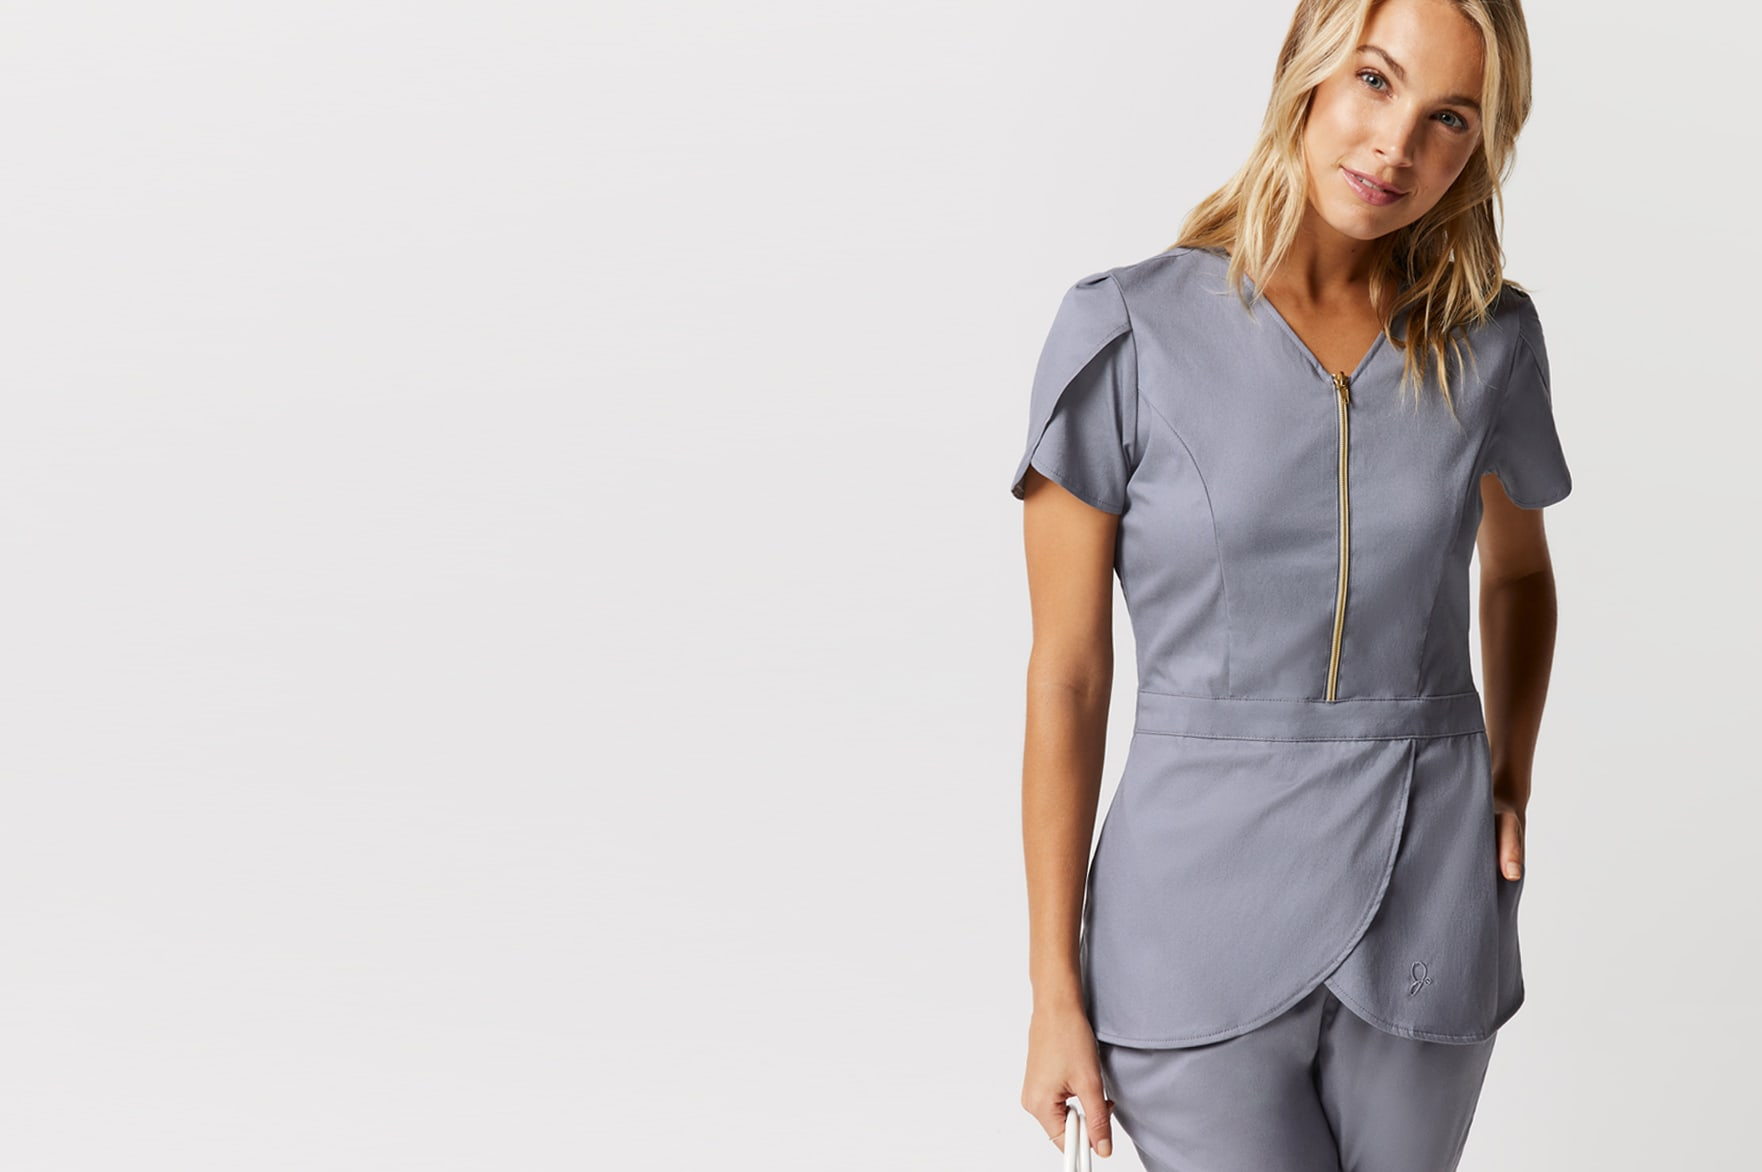 f2273a1617f Scrubs Reimagined: Modern Scrubs Inspired by Runway Styles